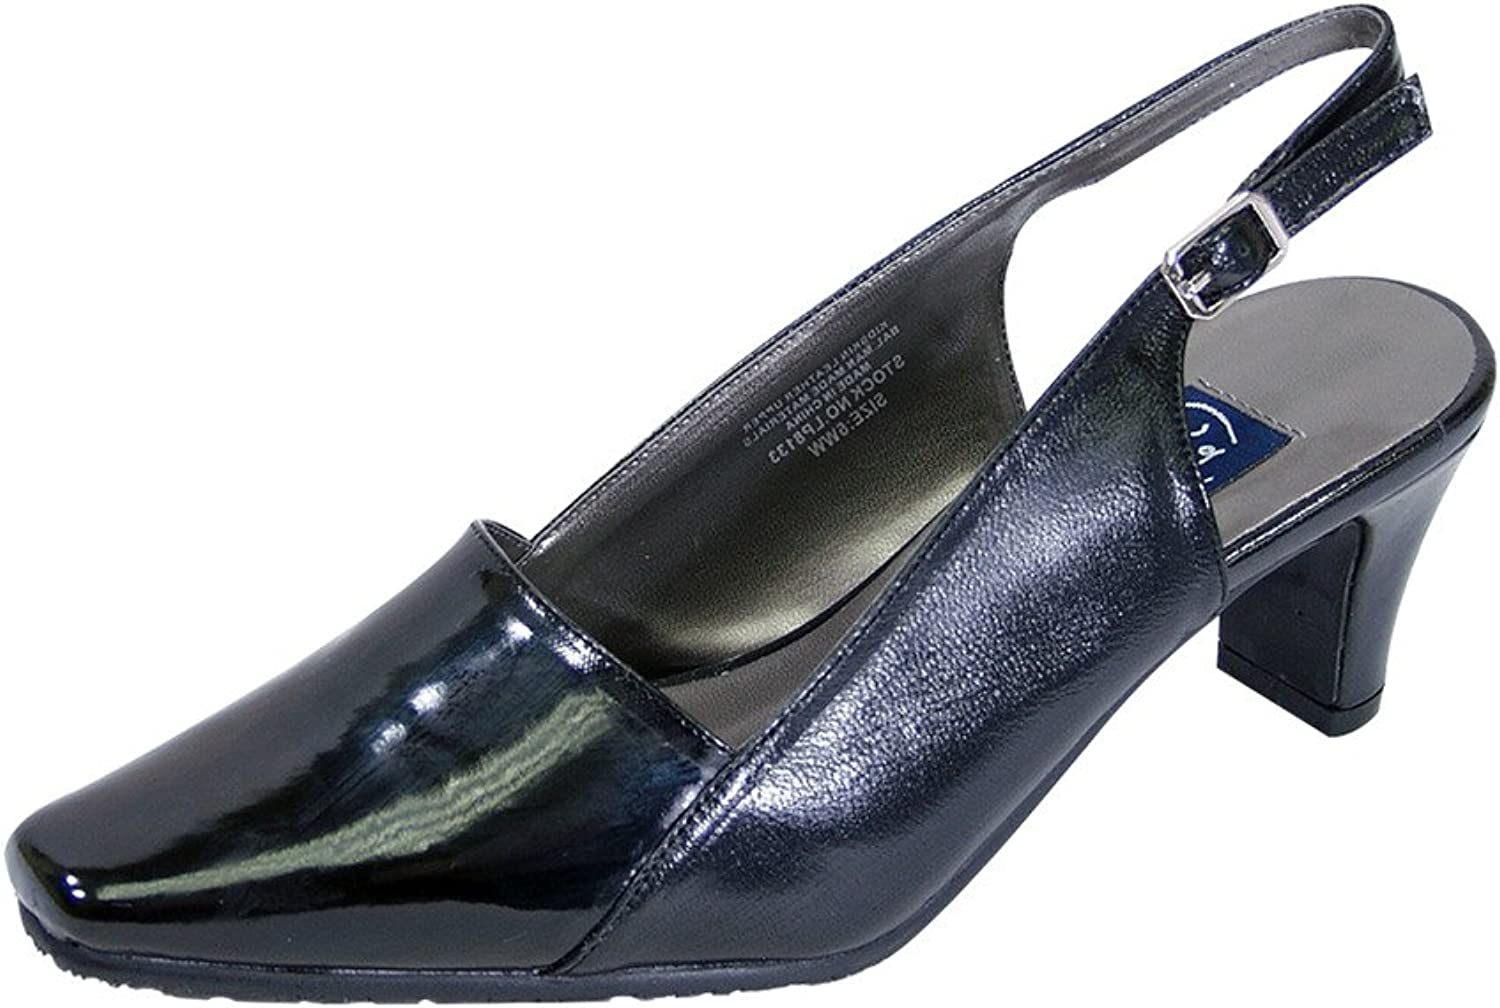 Peerage FIC Meredith Women Wide Width Shiny Faux Patent Square Toe Slingback Buckle (Size Measurement)